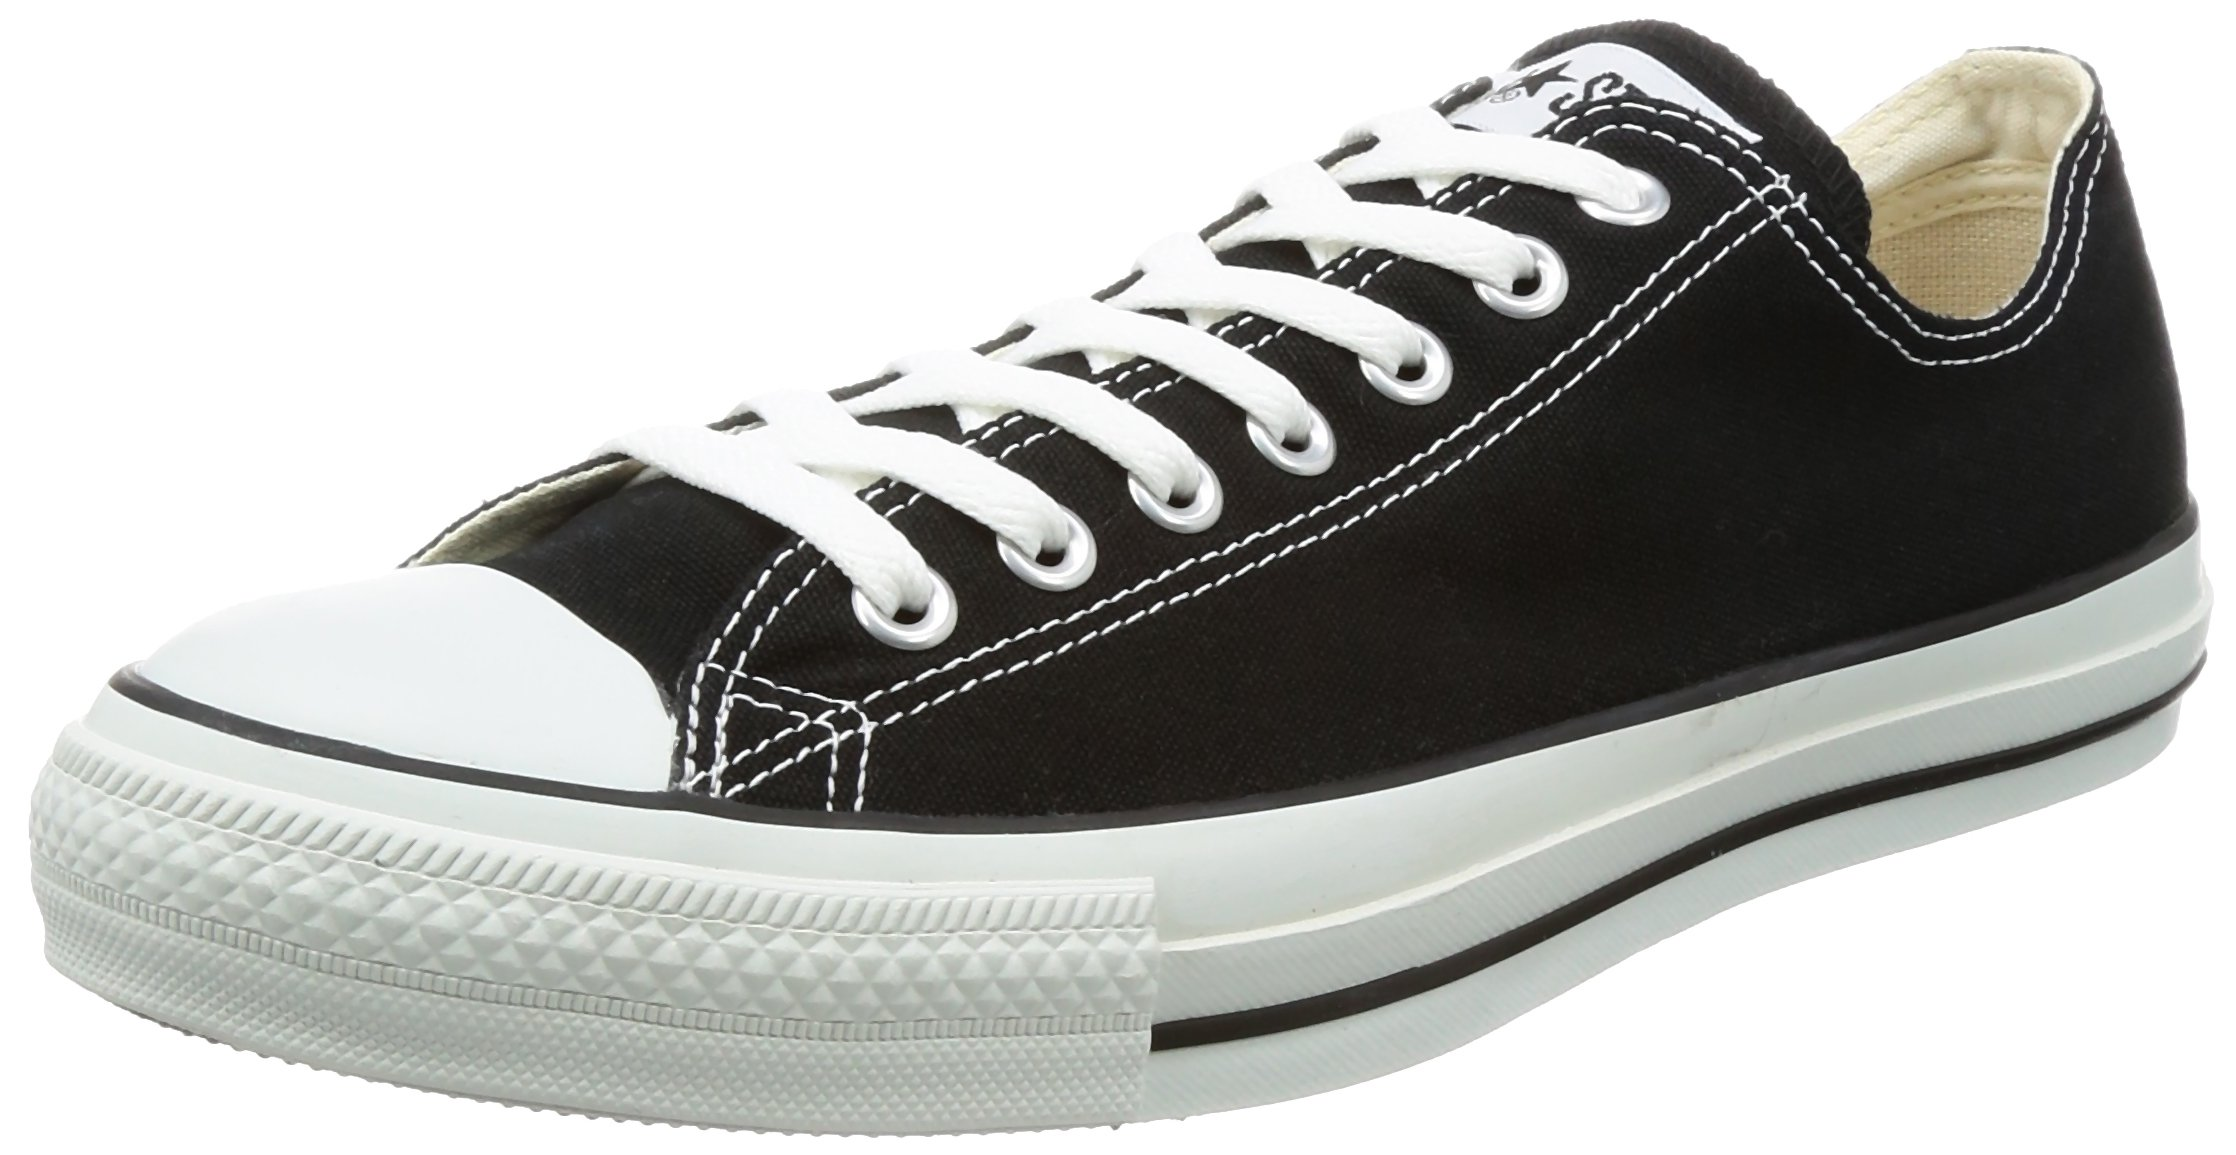 Converse Chuck Taylor All Star Core Low Top Black 9 D(M) US